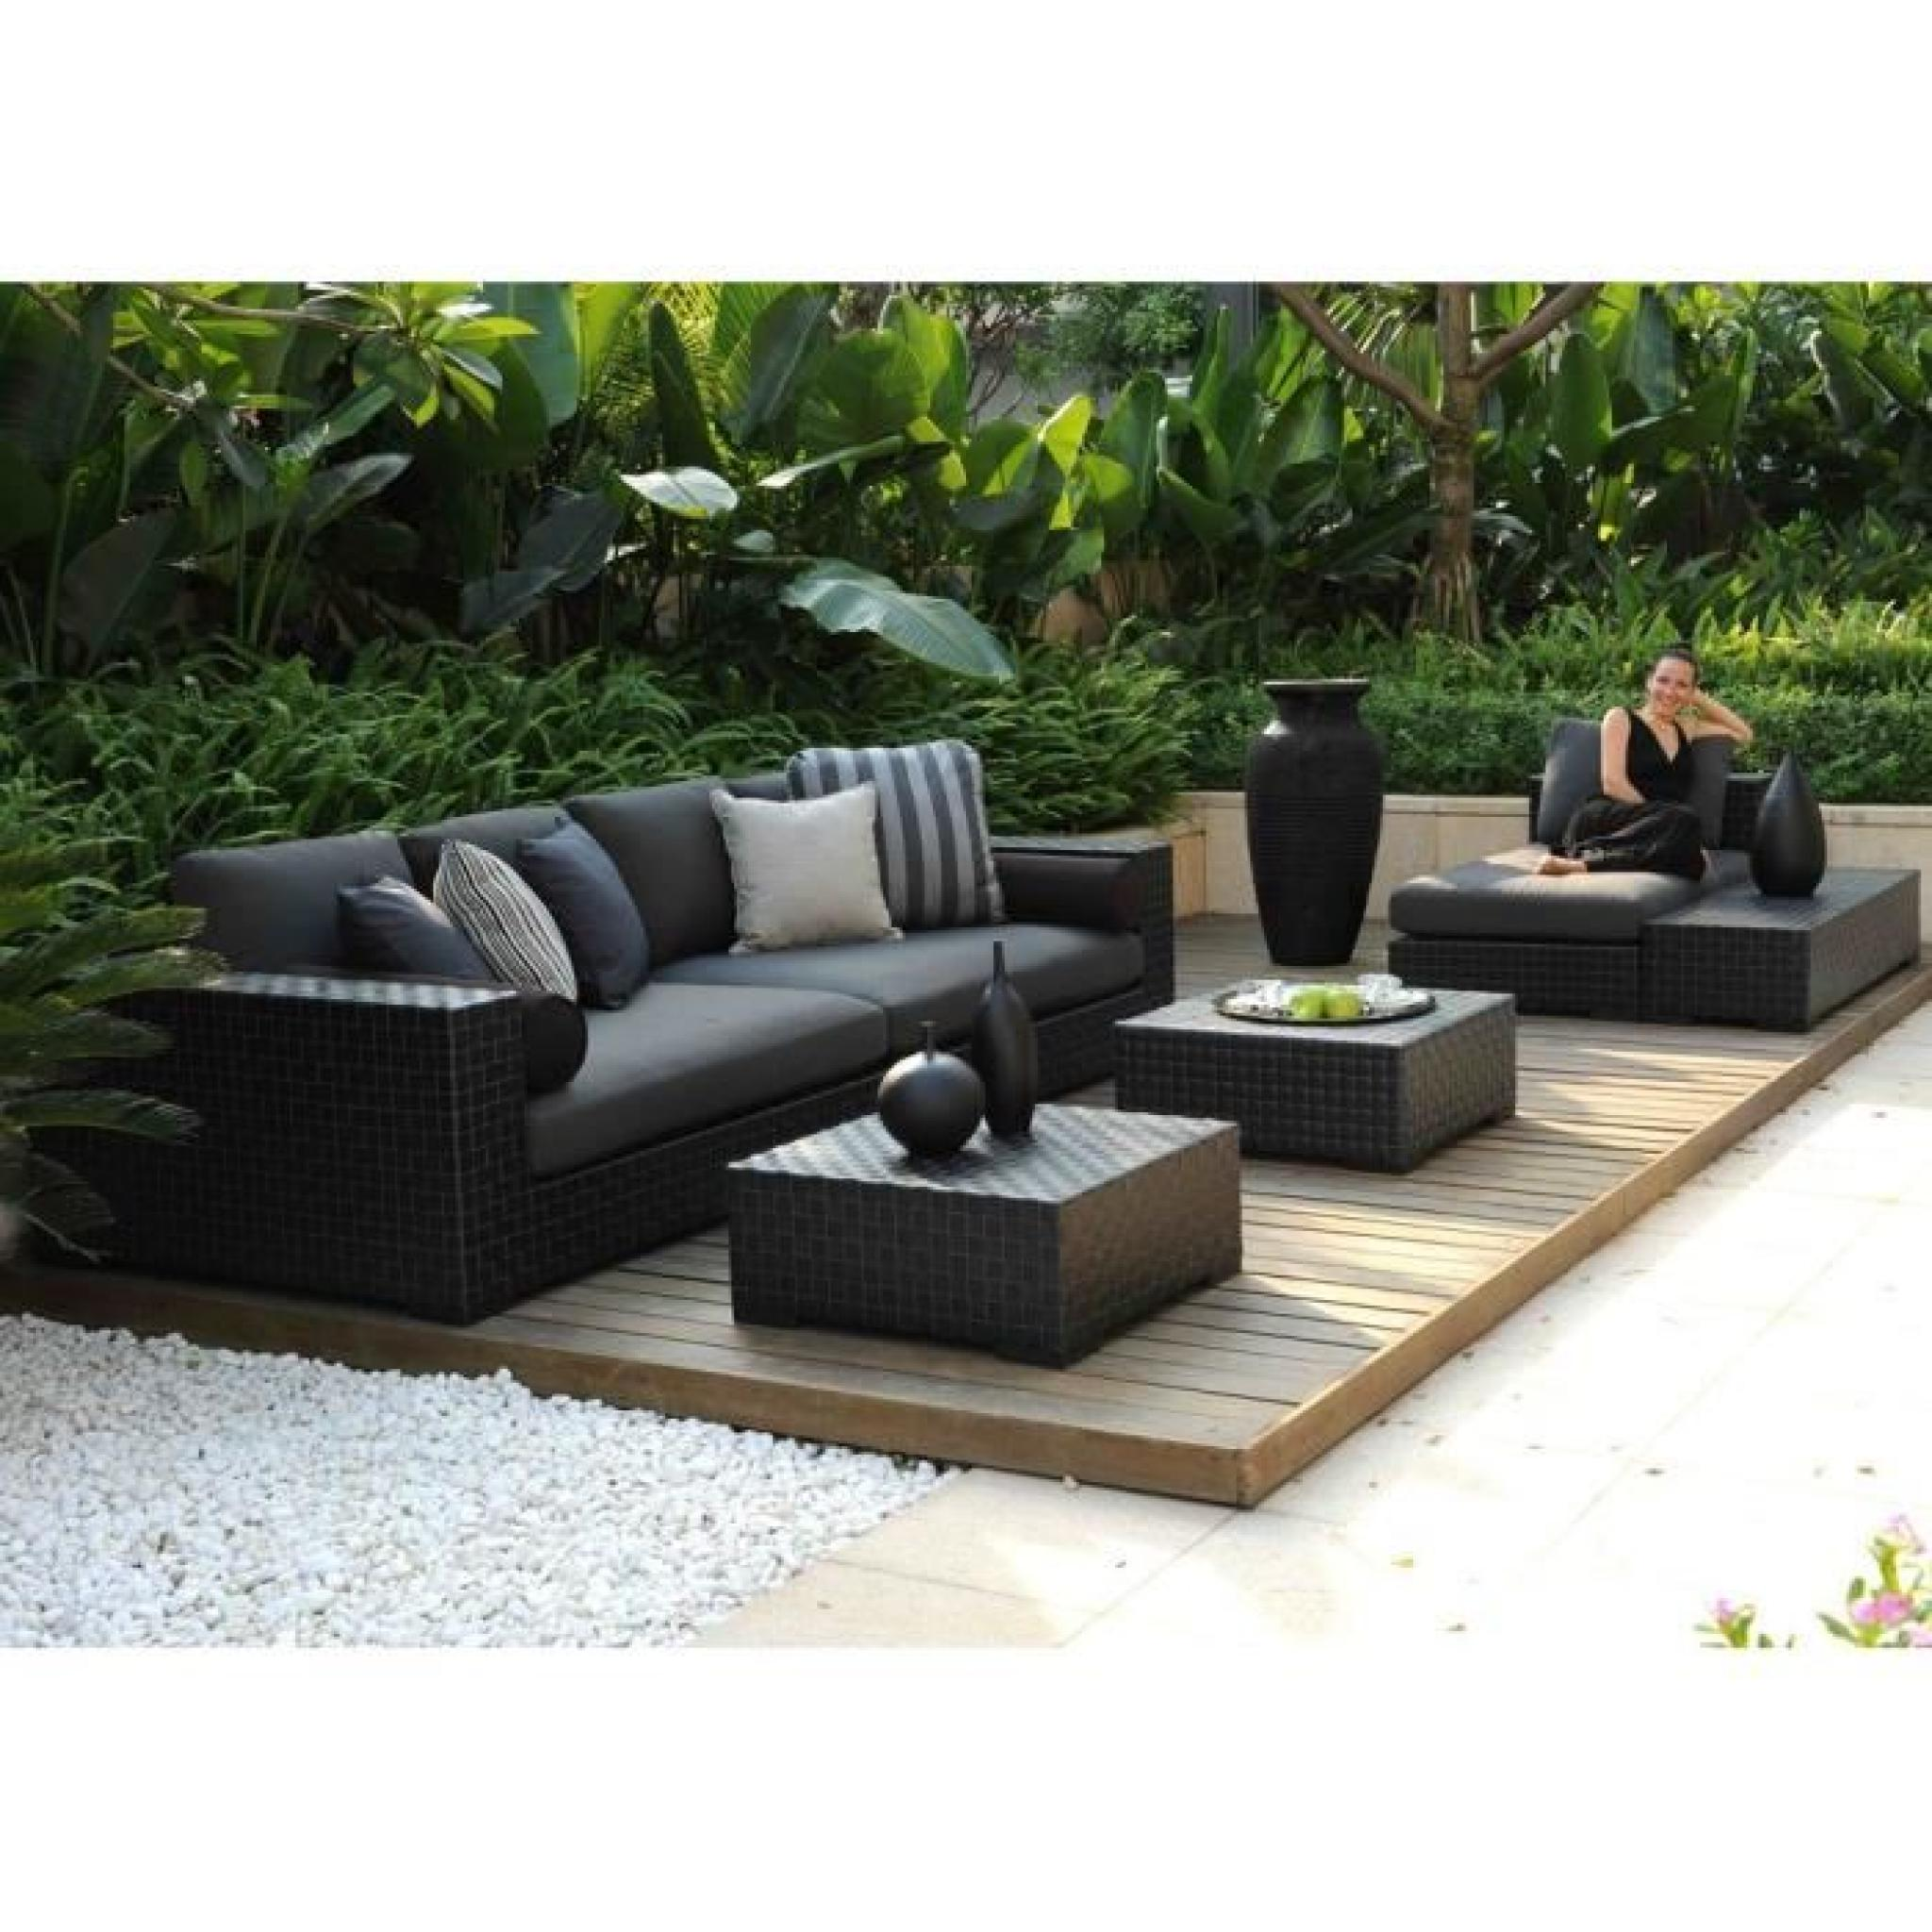 salon de jardin 5 places modulable r sine tress e plate. Black Bedroom Furniture Sets. Home Design Ideas